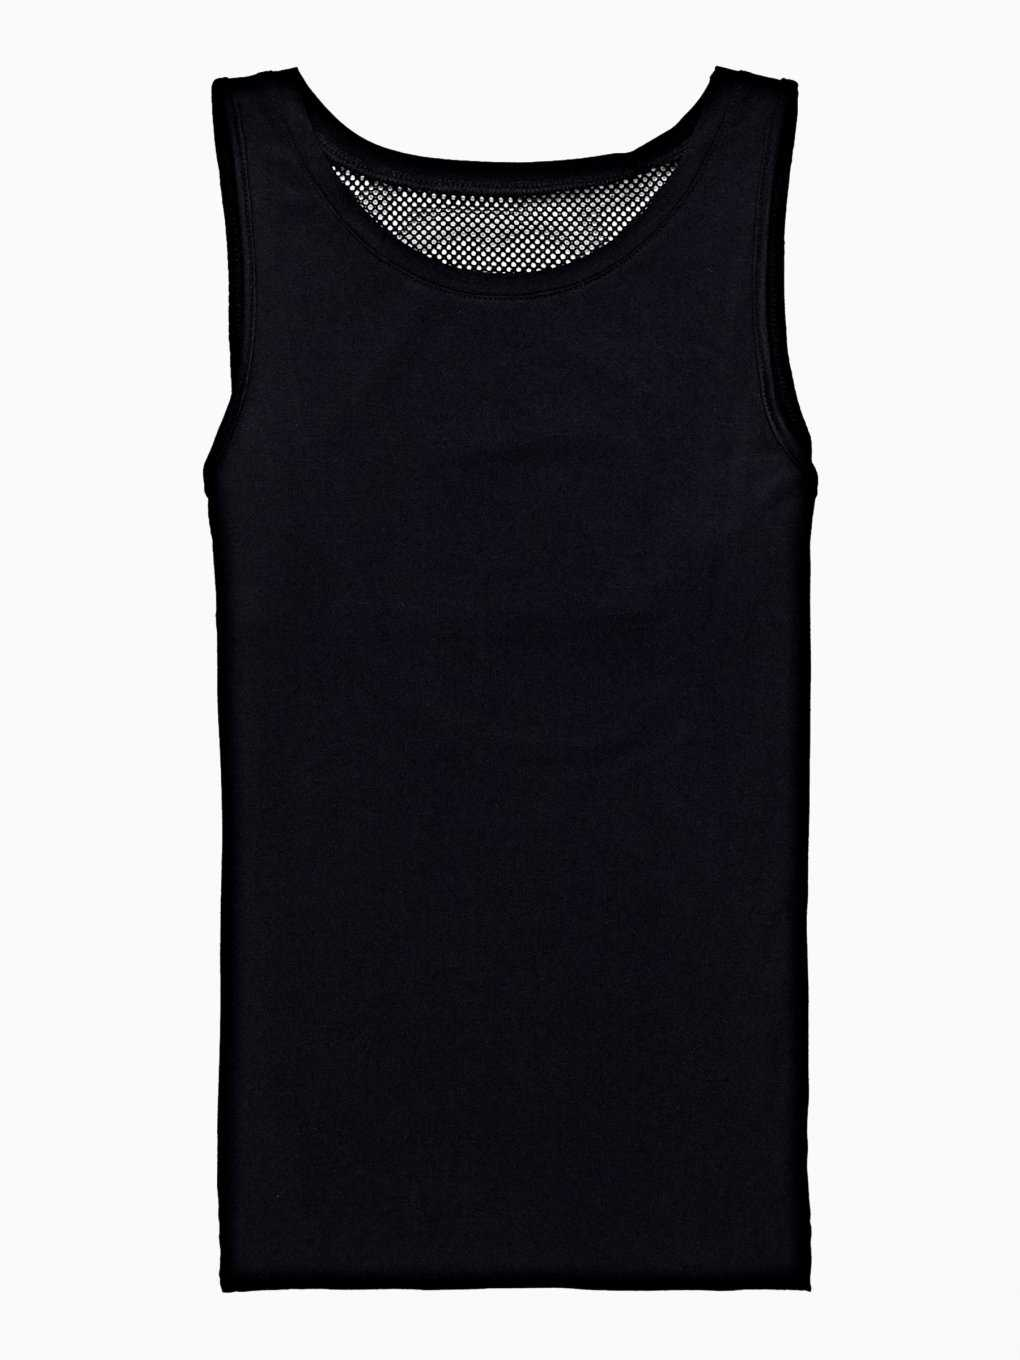 SPORTS TANK WITH MESH